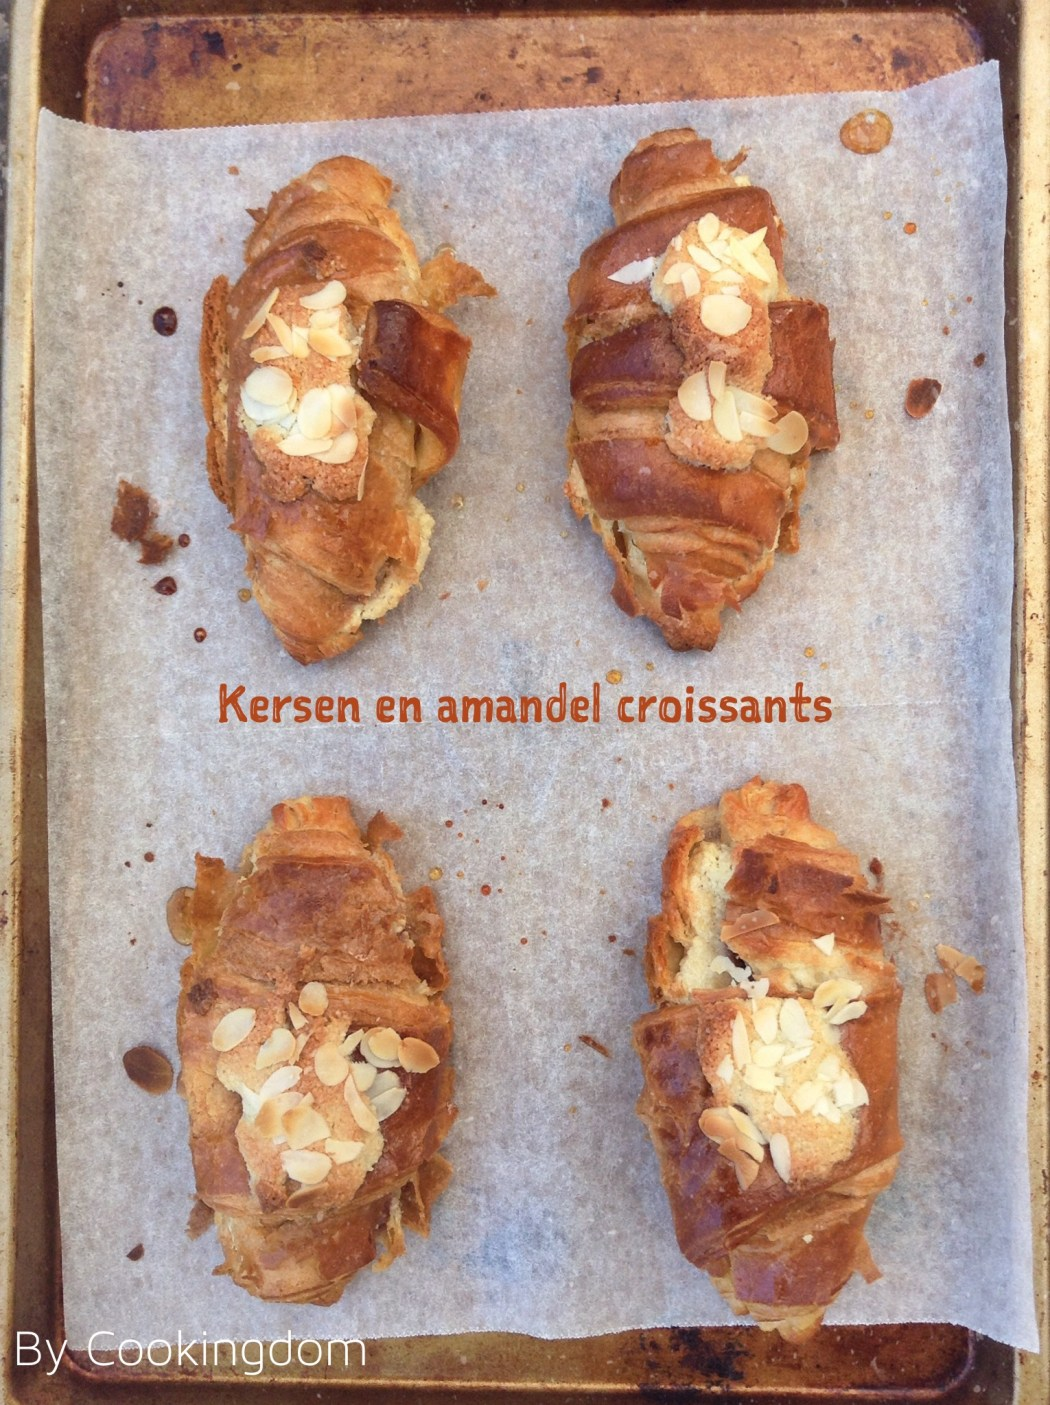 Kersen en amandel croissants By Cookingdom